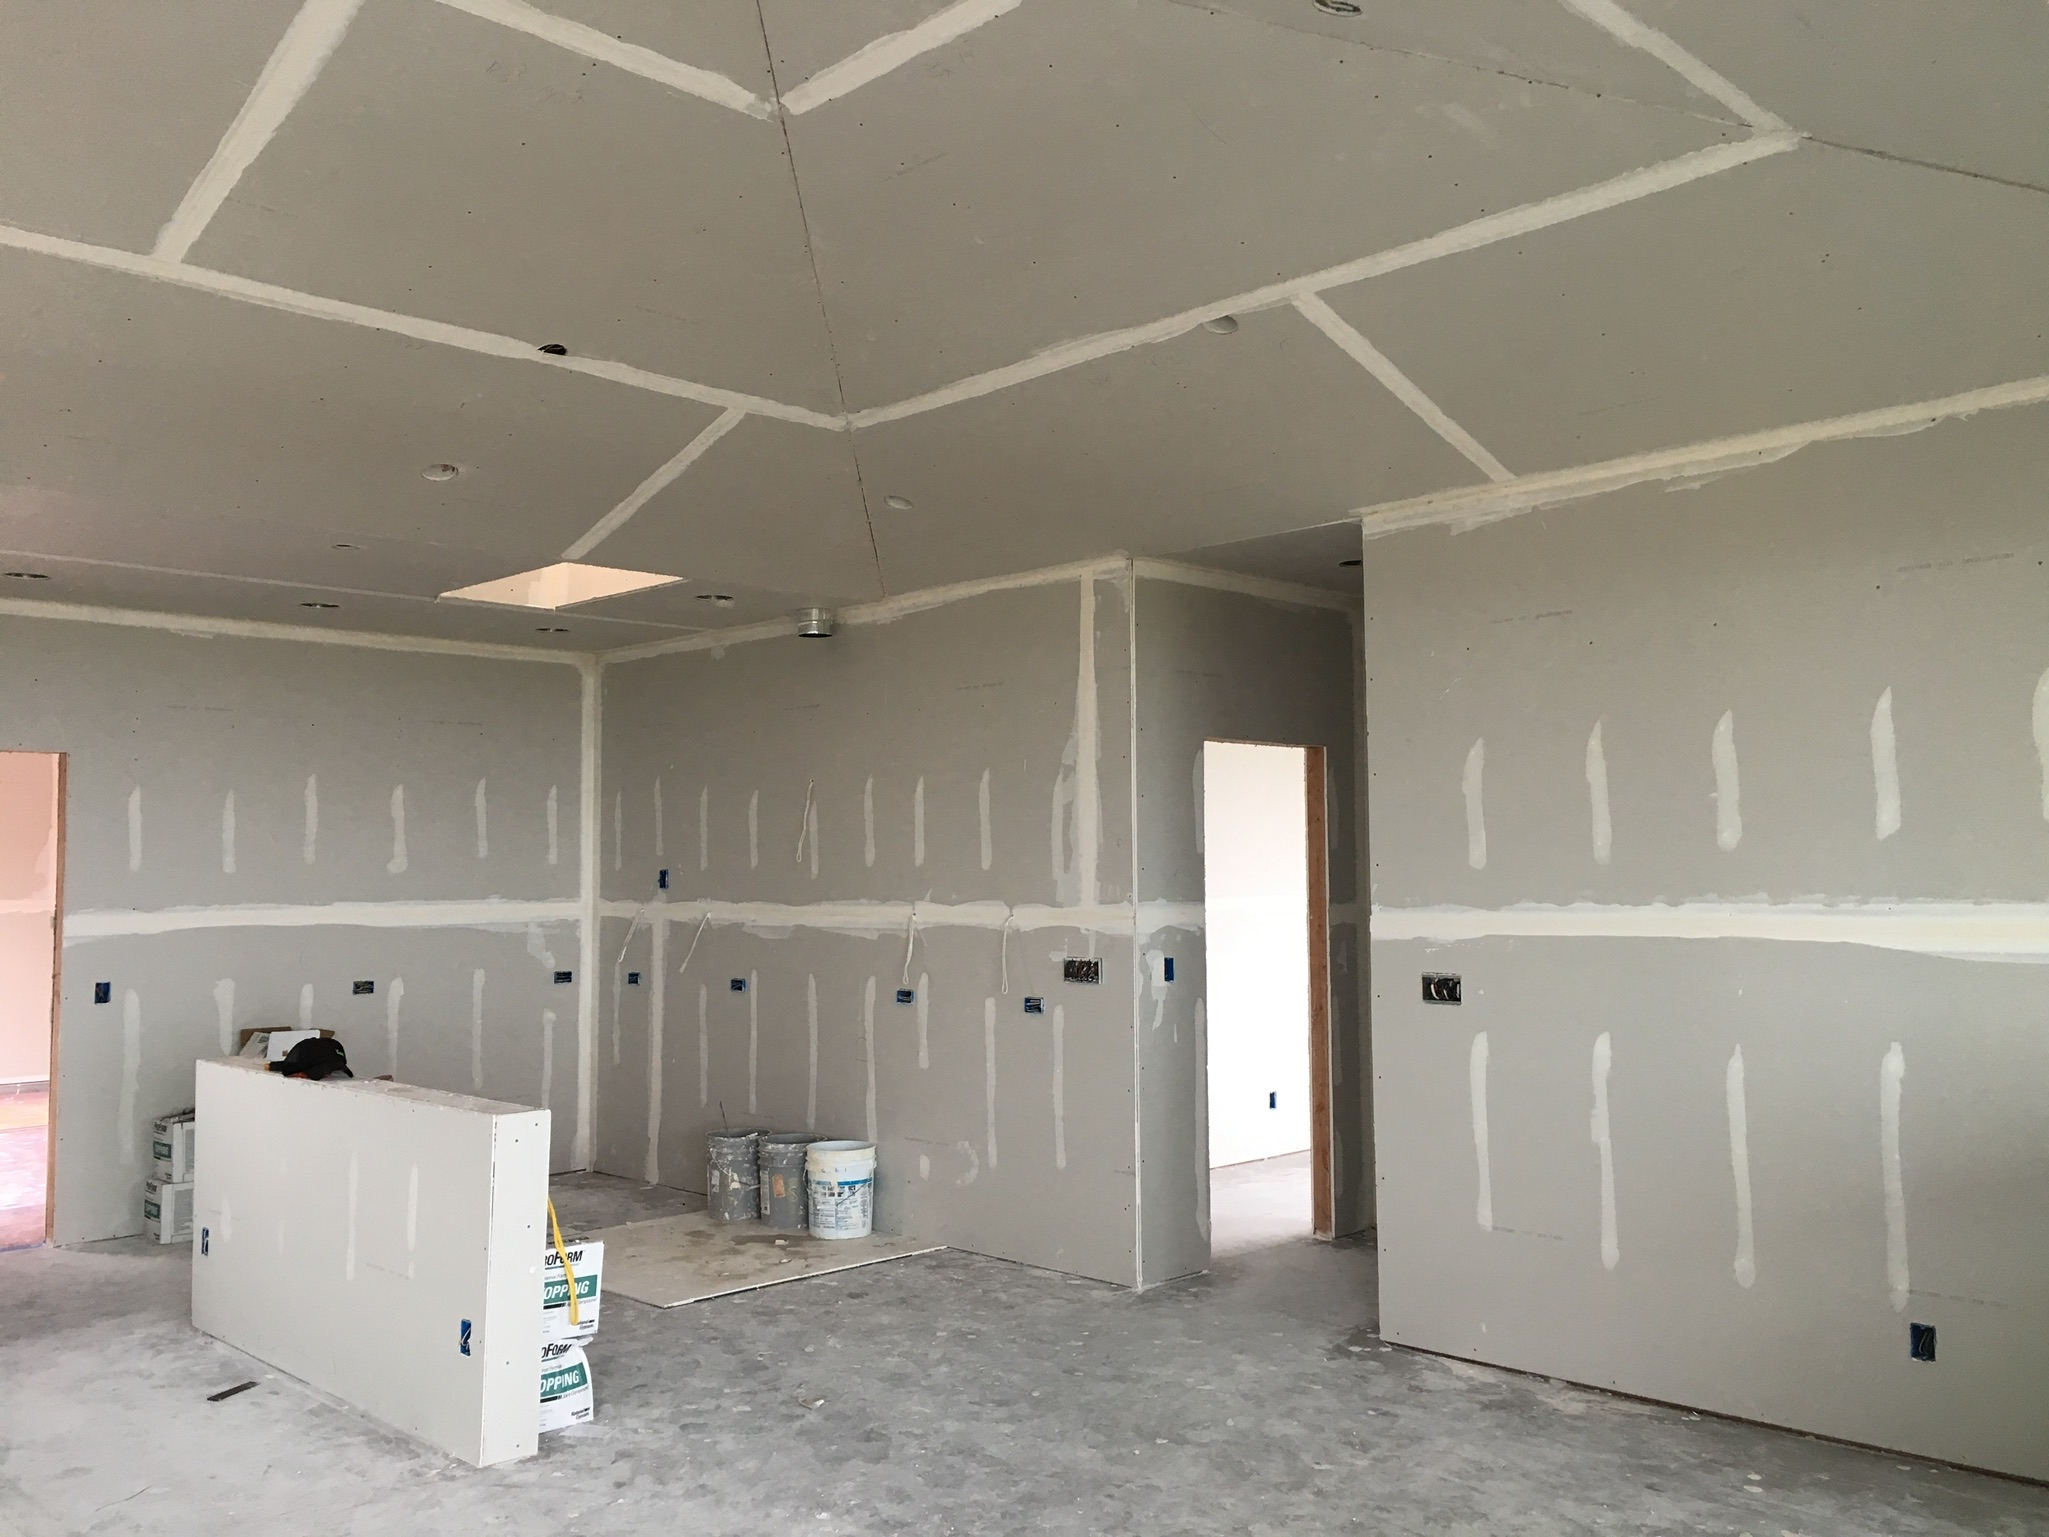 Interior of a home with drywall